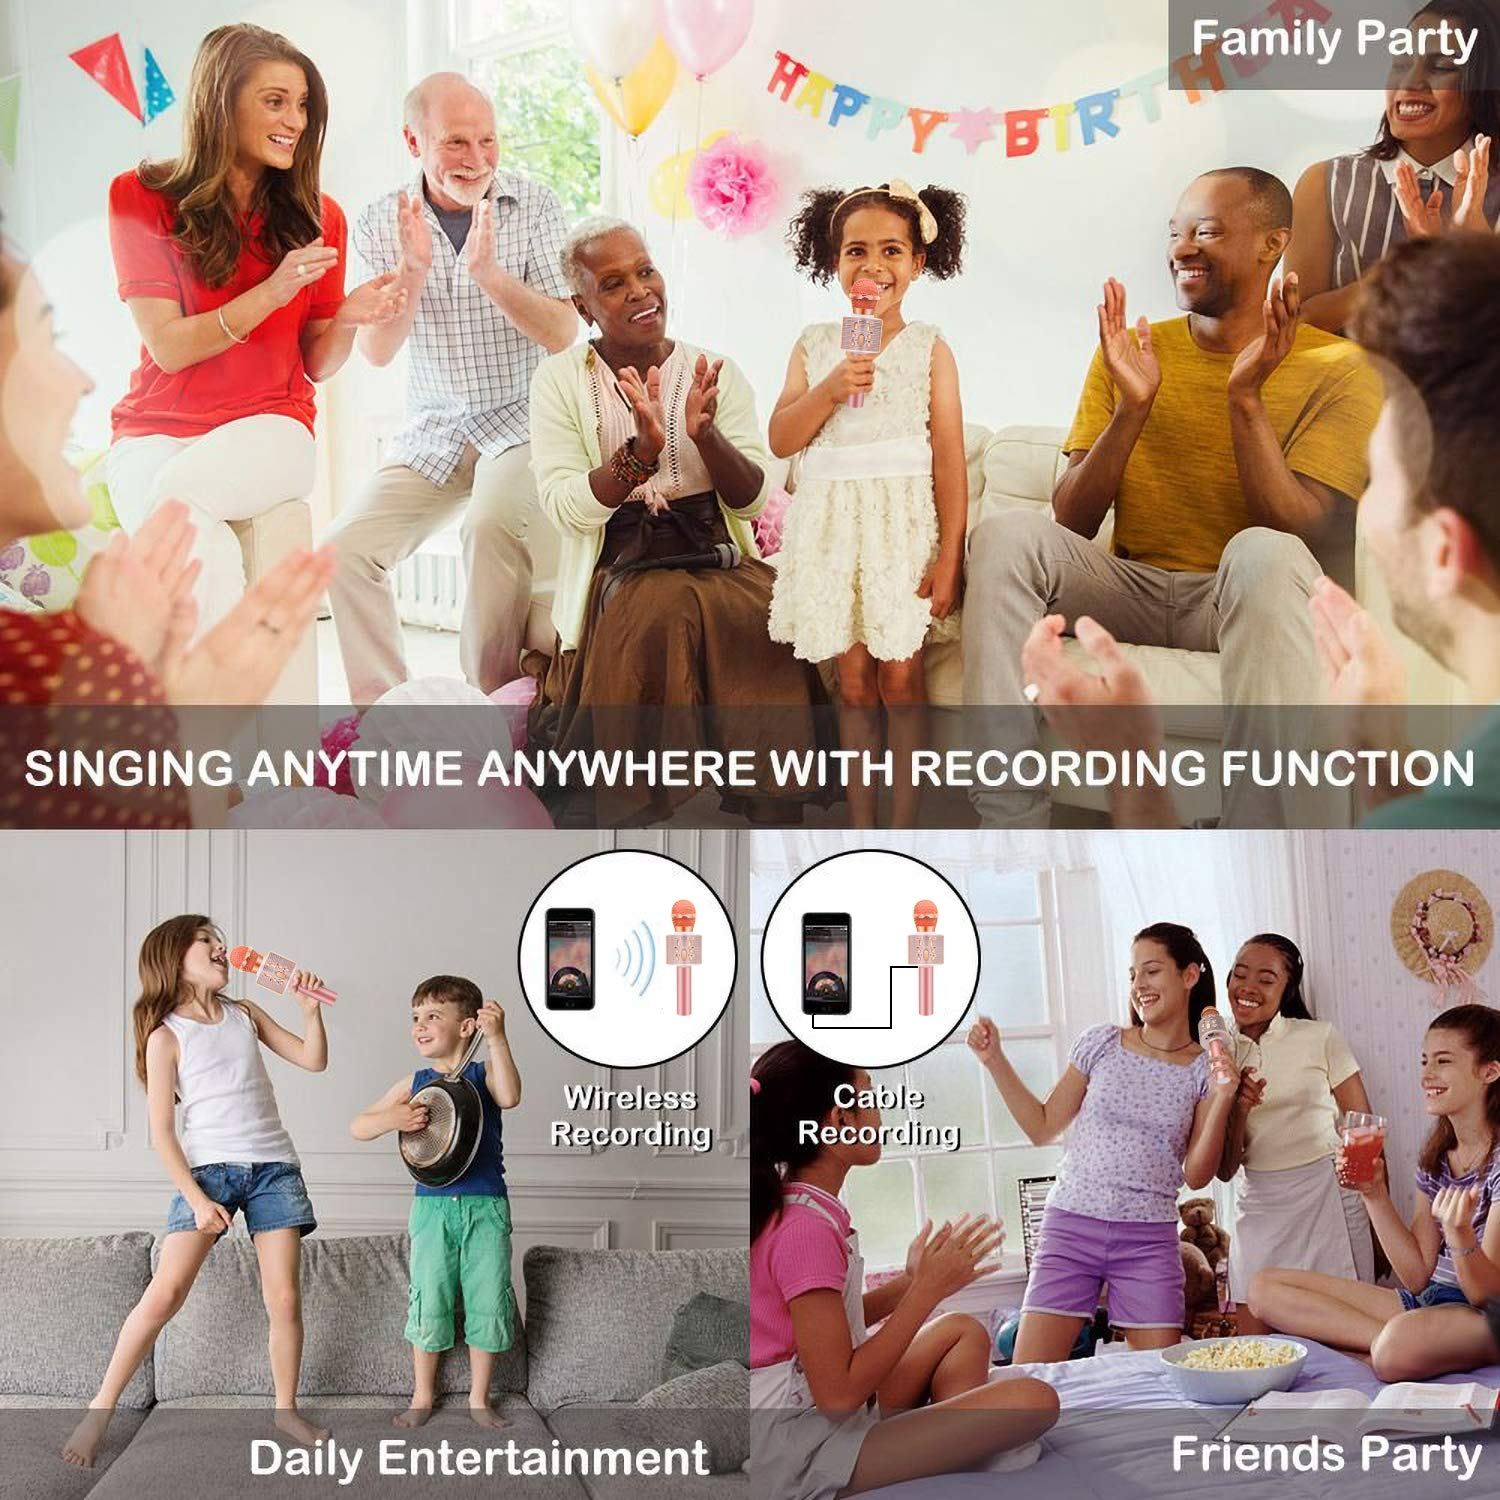 Wireless Karaoke Microphone with Speaker Pro, 3-in-1 Portable Handheld Karaoke Mic Home Party Birthday Gifts for Kids Speaker Machine for Android/ PC /phone(Rose Gold) by weird tails (Image #7)